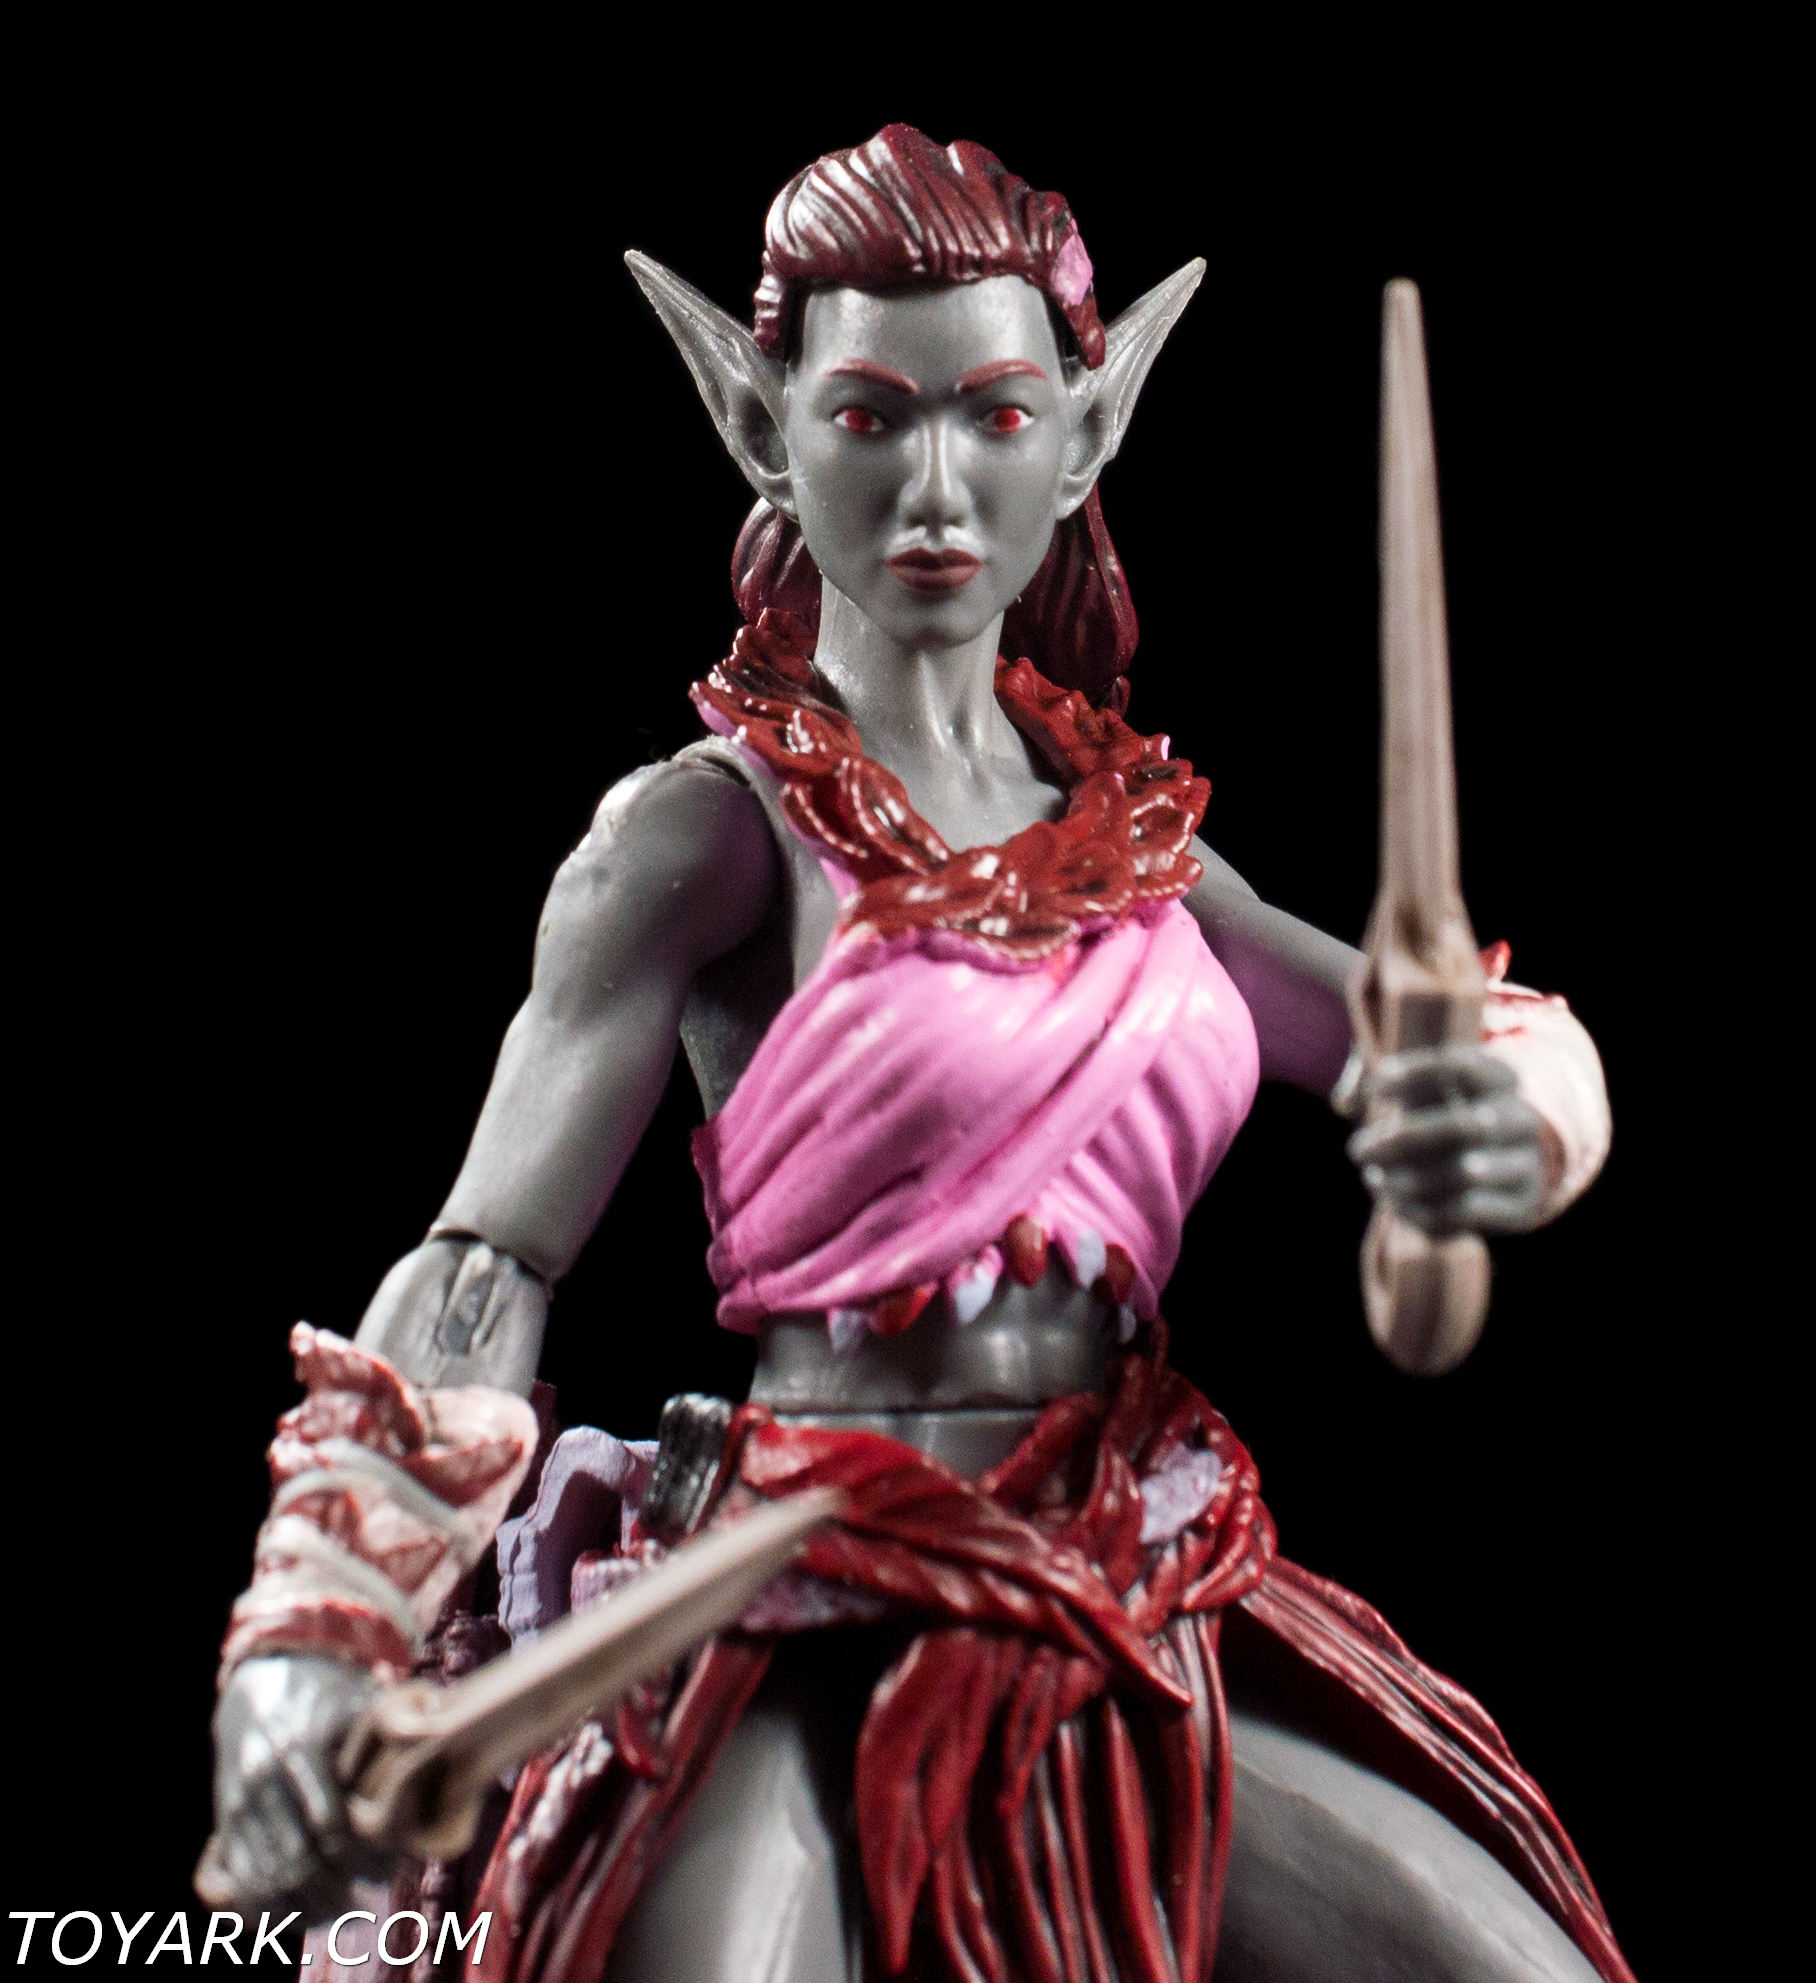 Elven Warrior Ceriseir action figure